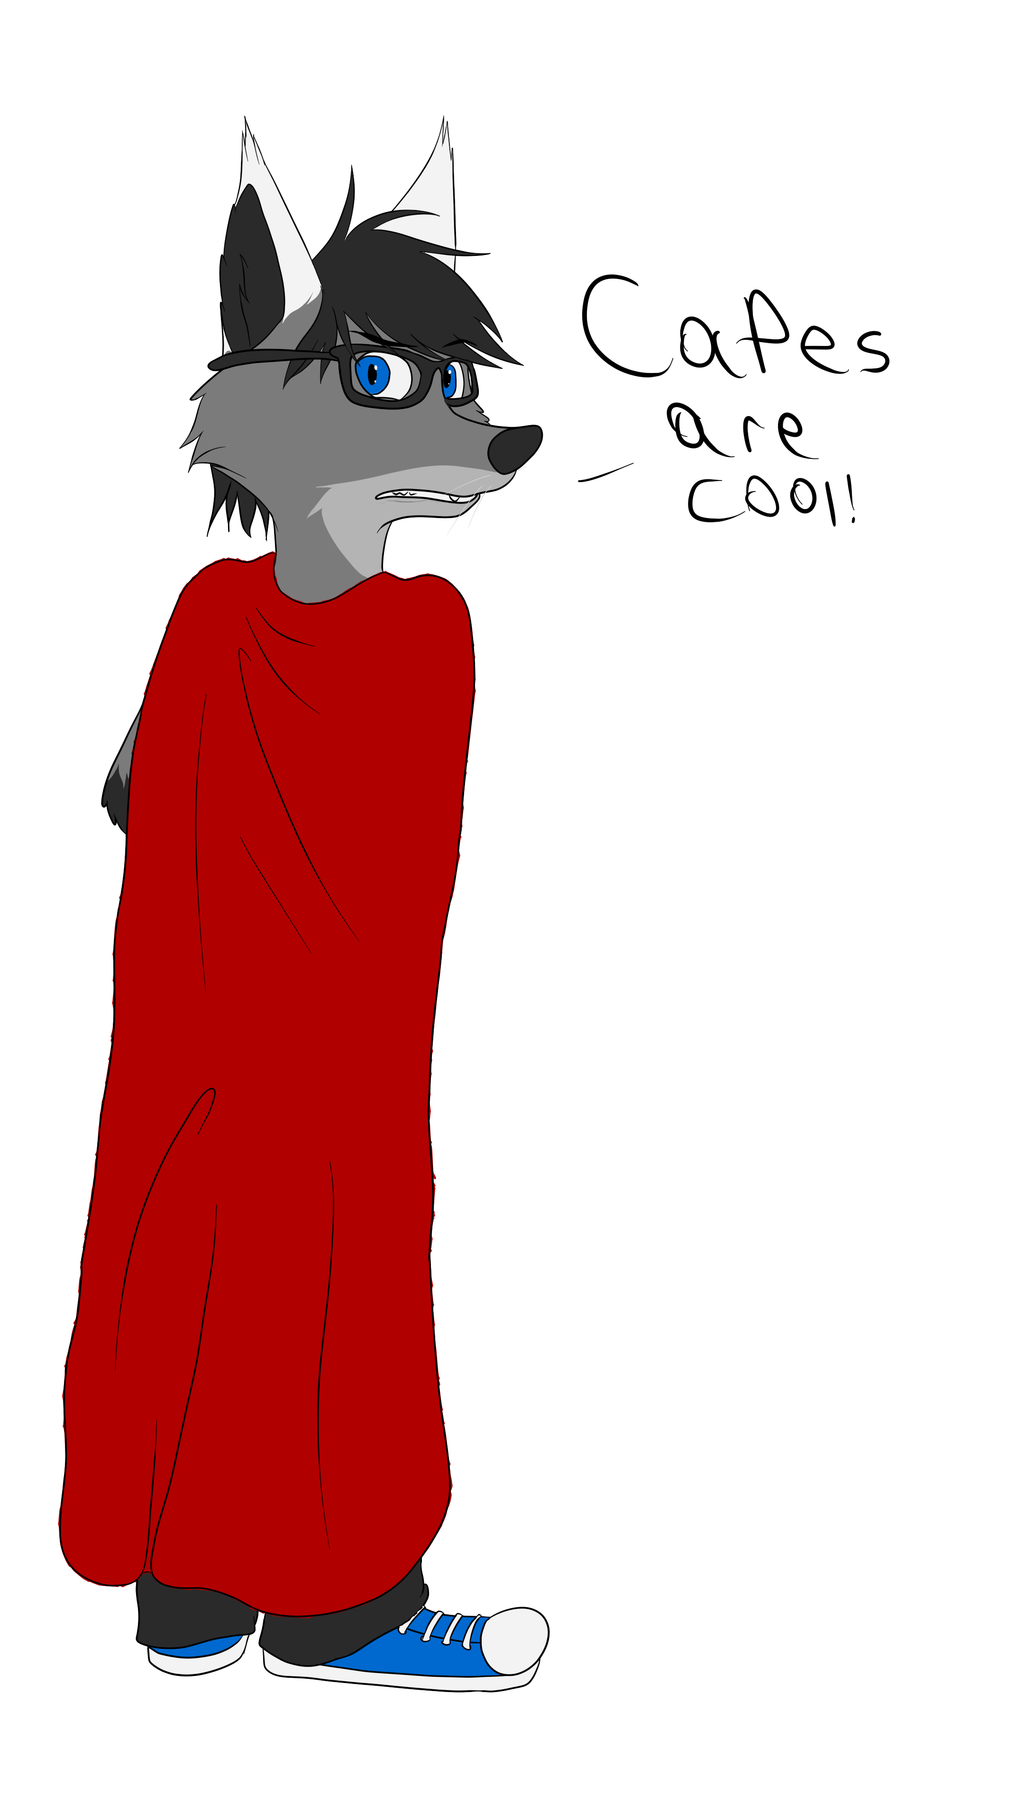 Capes are cool!